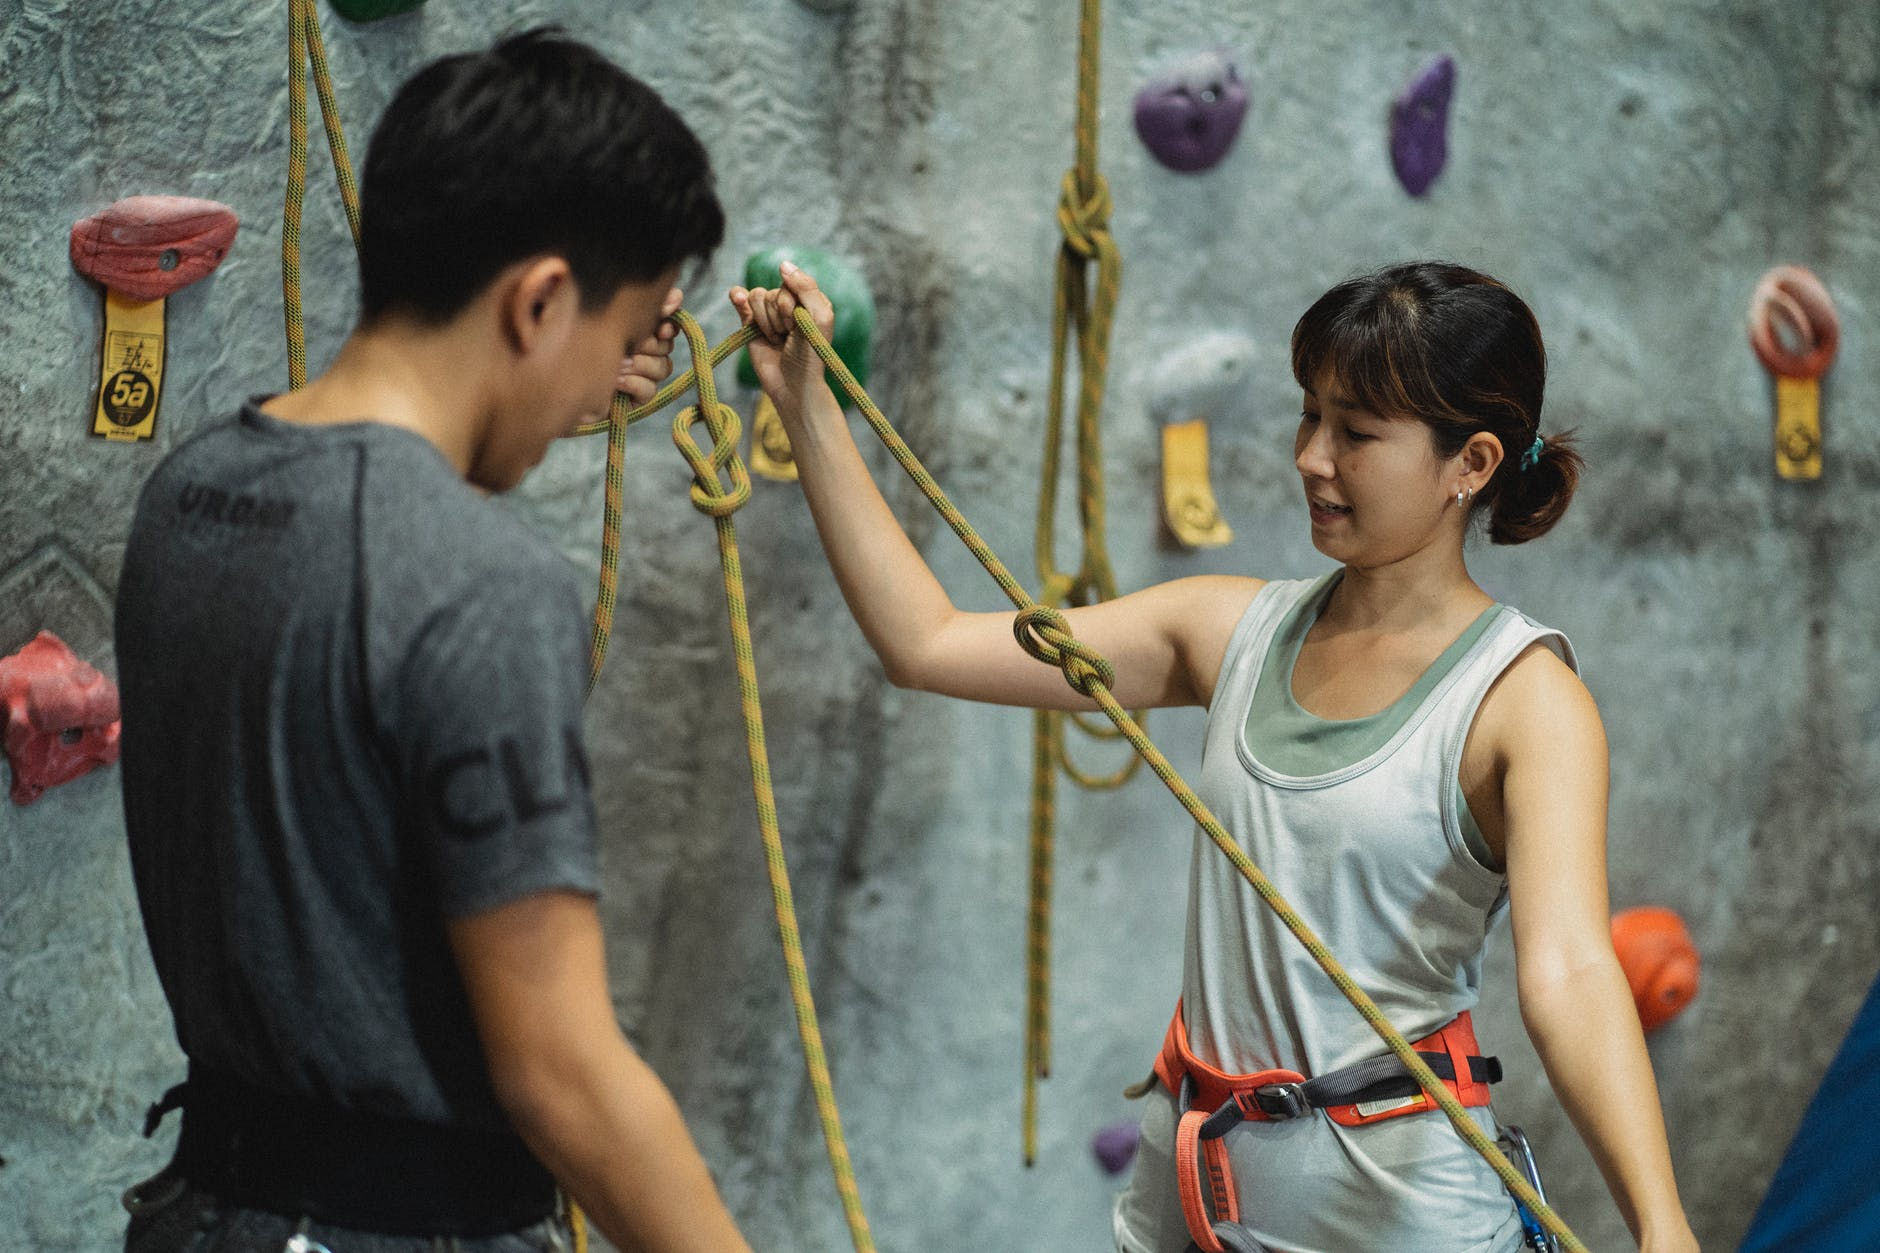 unrecognizable instructor interacting with asian mountaineer while preparing safety ropes